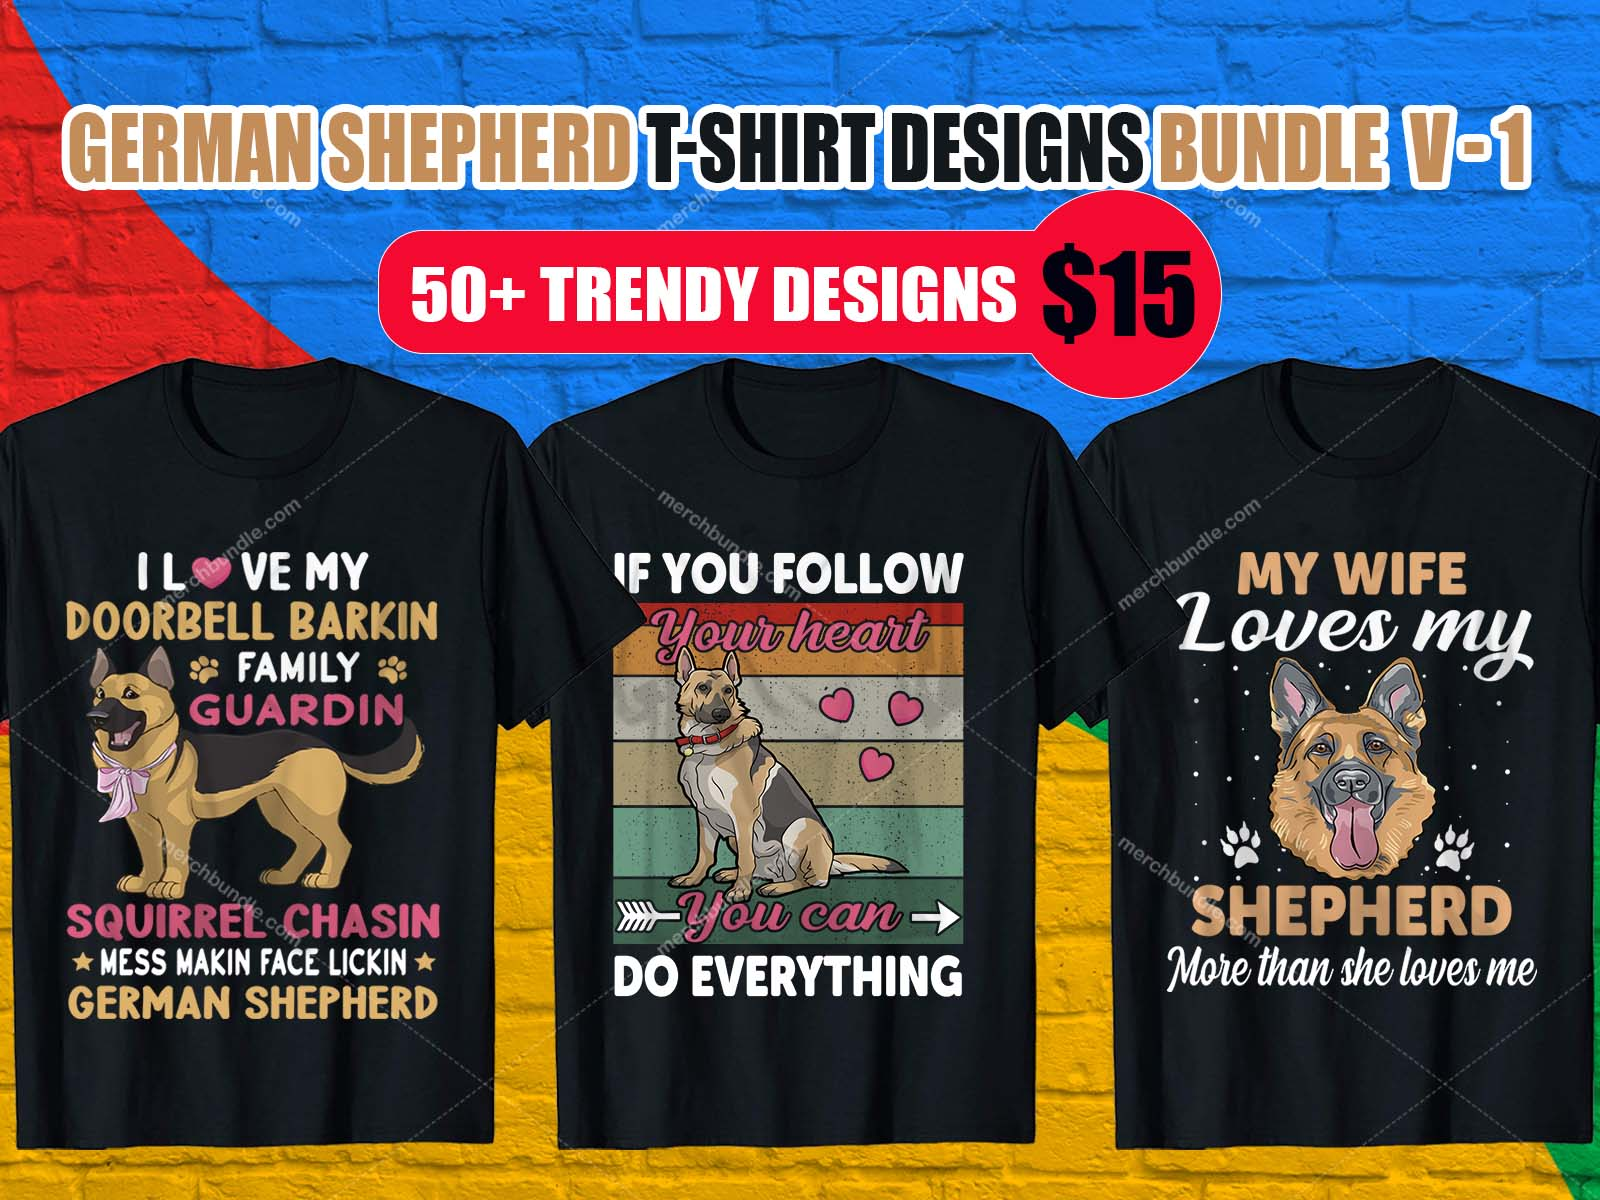 German Shepherd T Shirt Design Bundles